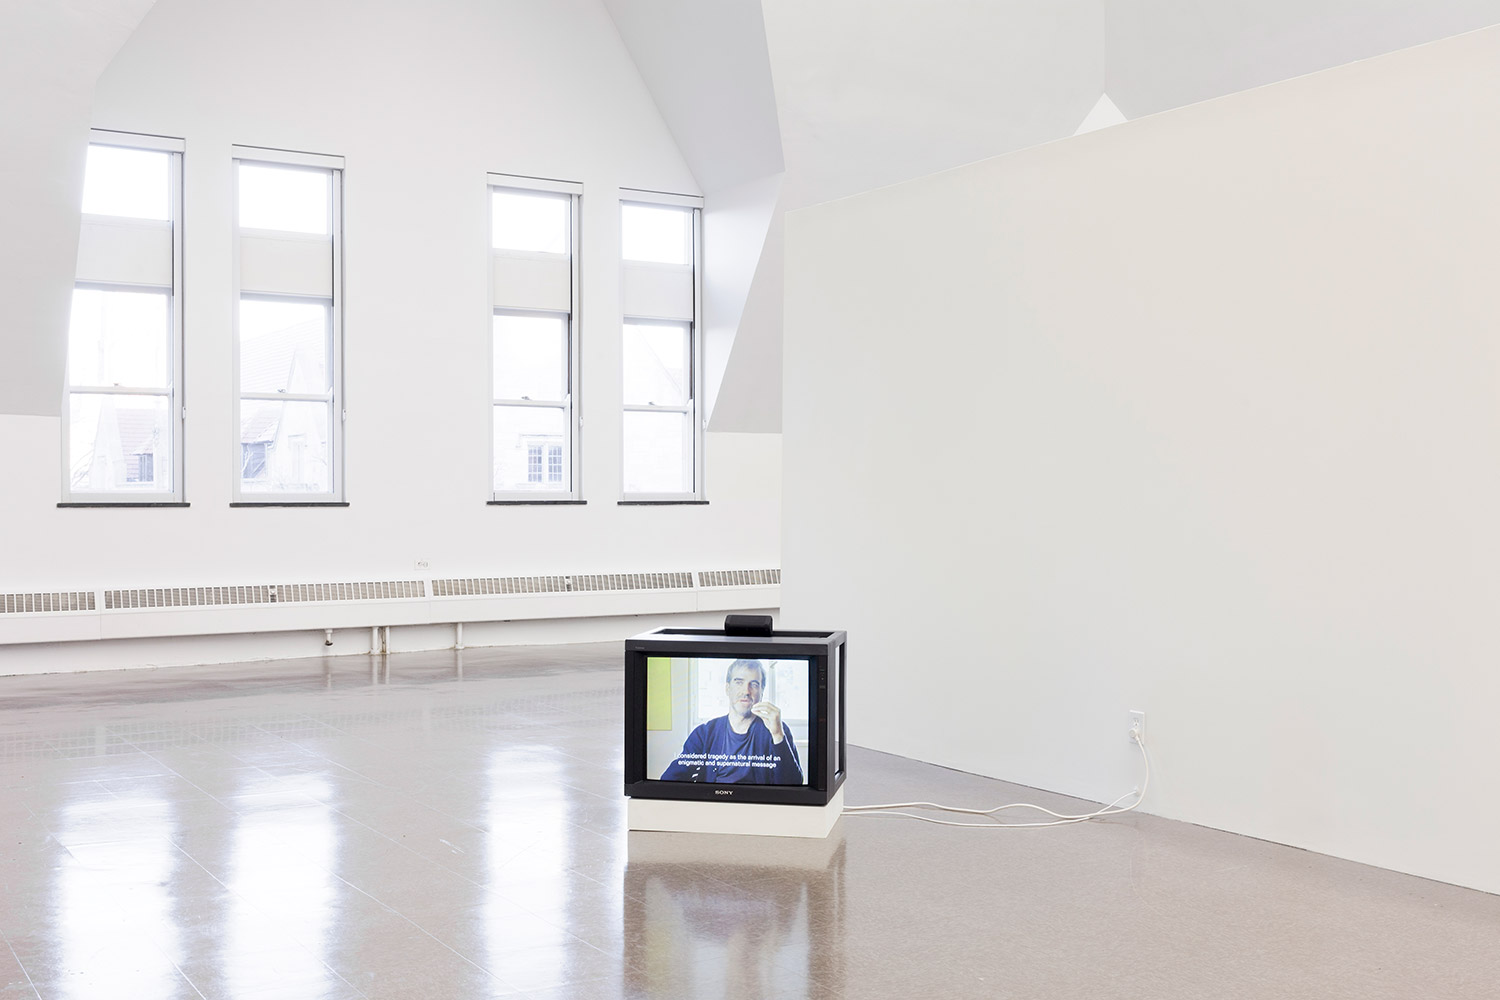 A TV resting on the floor plays a film of a man sitting in front of a window and talking.